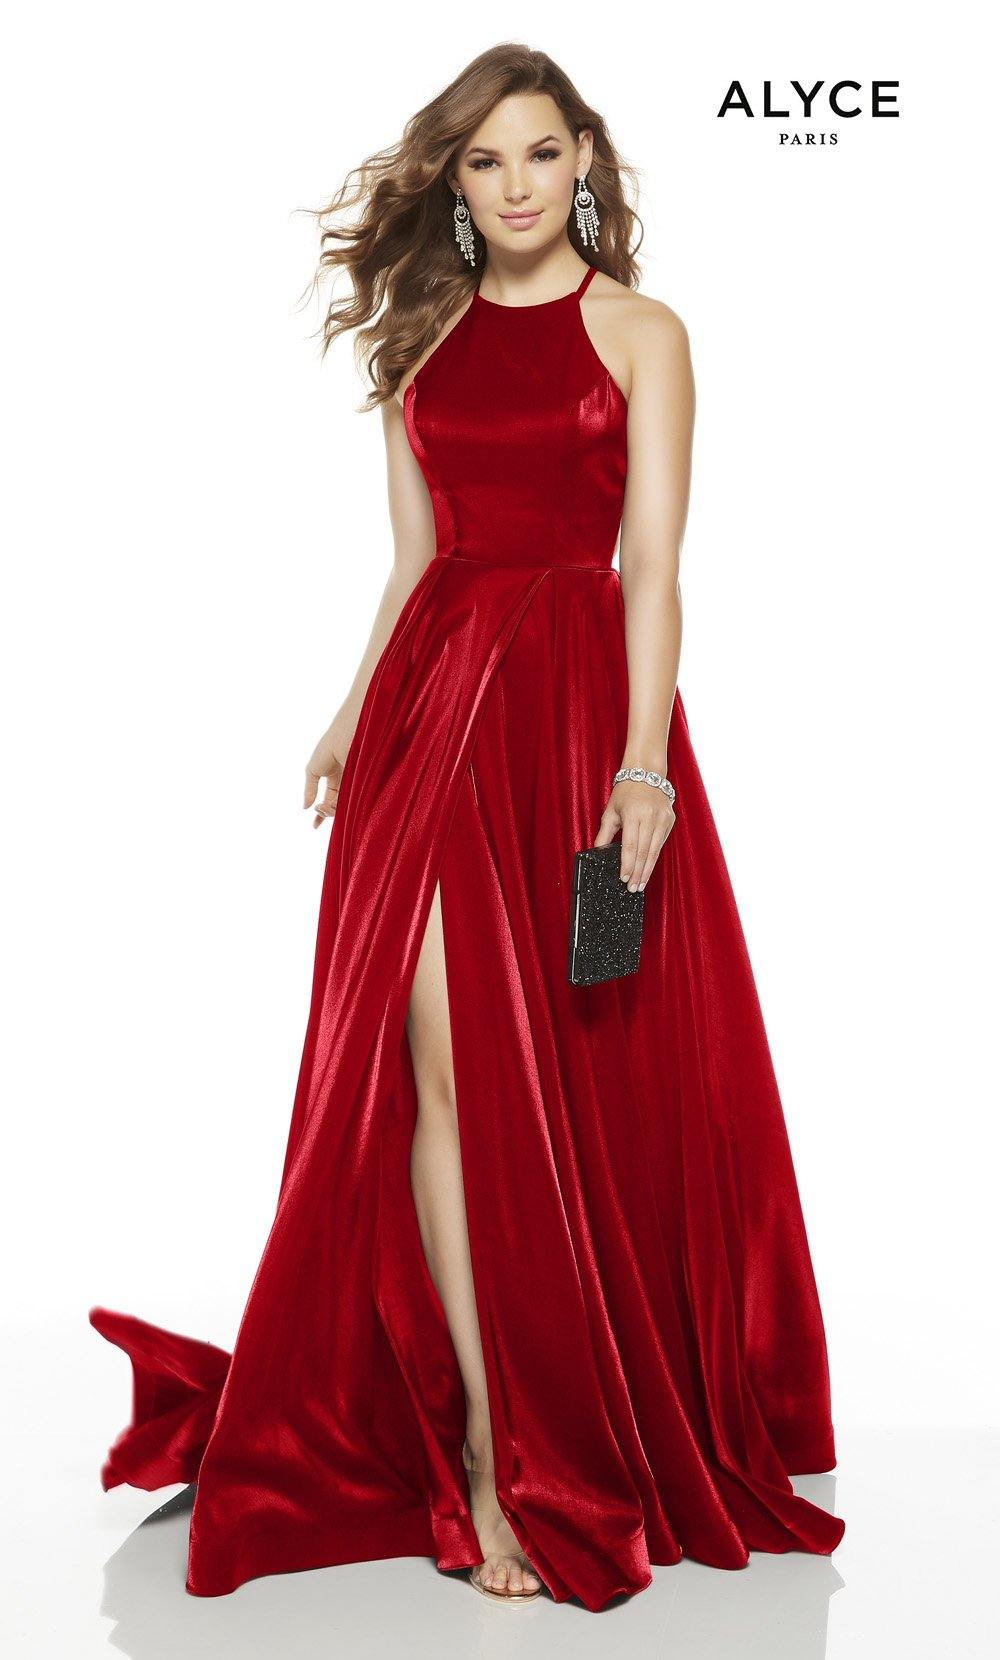 Red formal dress with a halter neckline and a slit